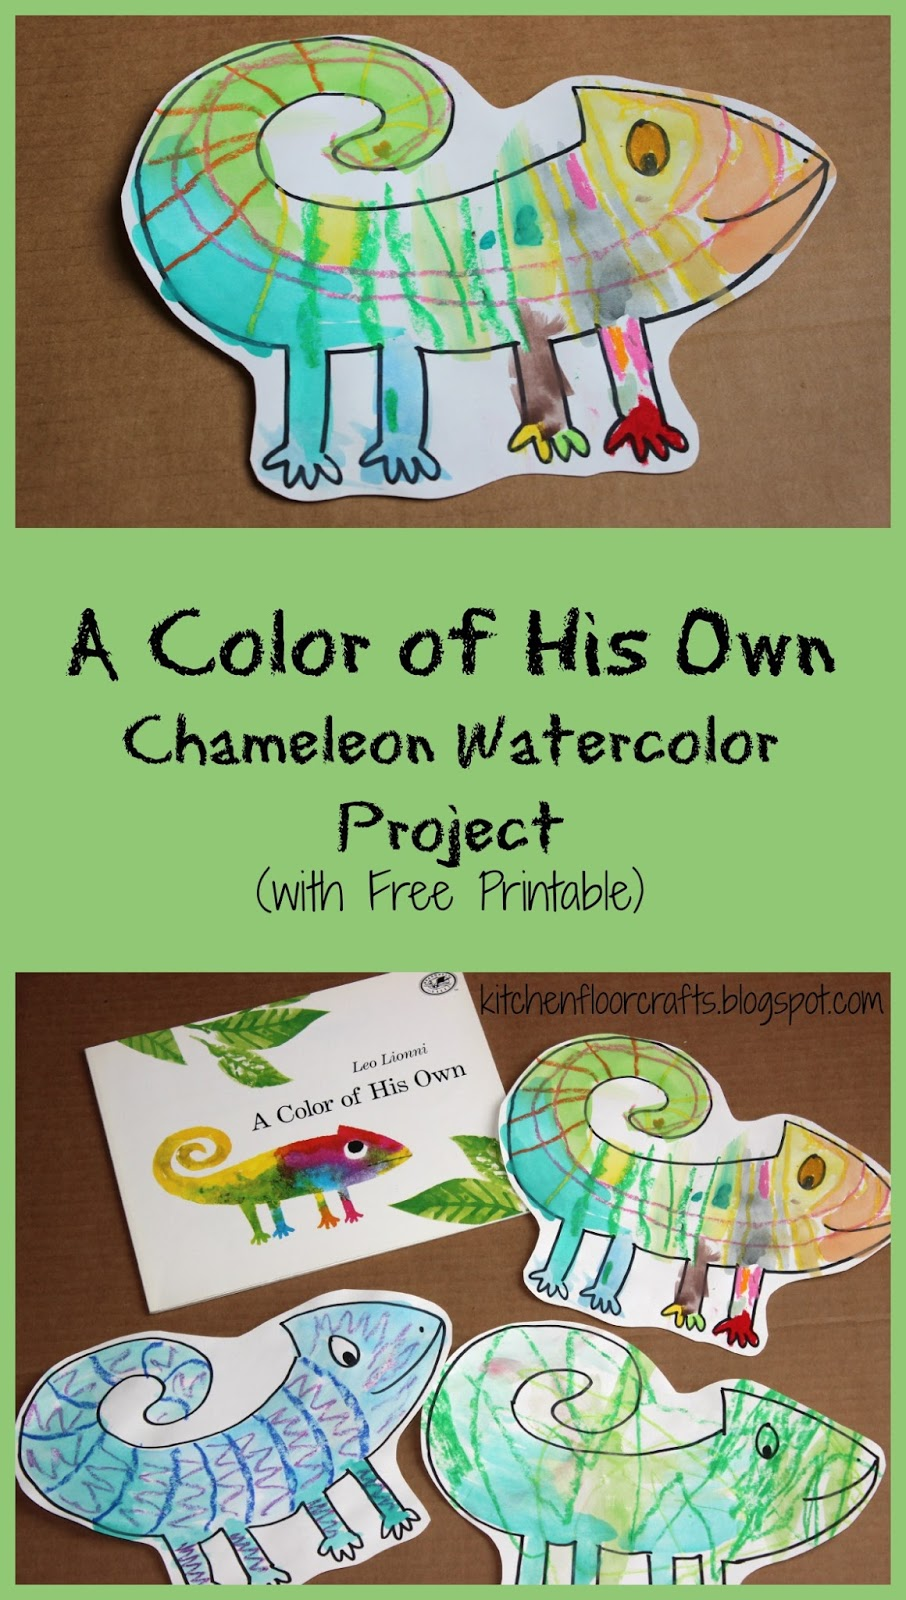 Kitchen Floor Crafts A Color Of His Own Chameleon